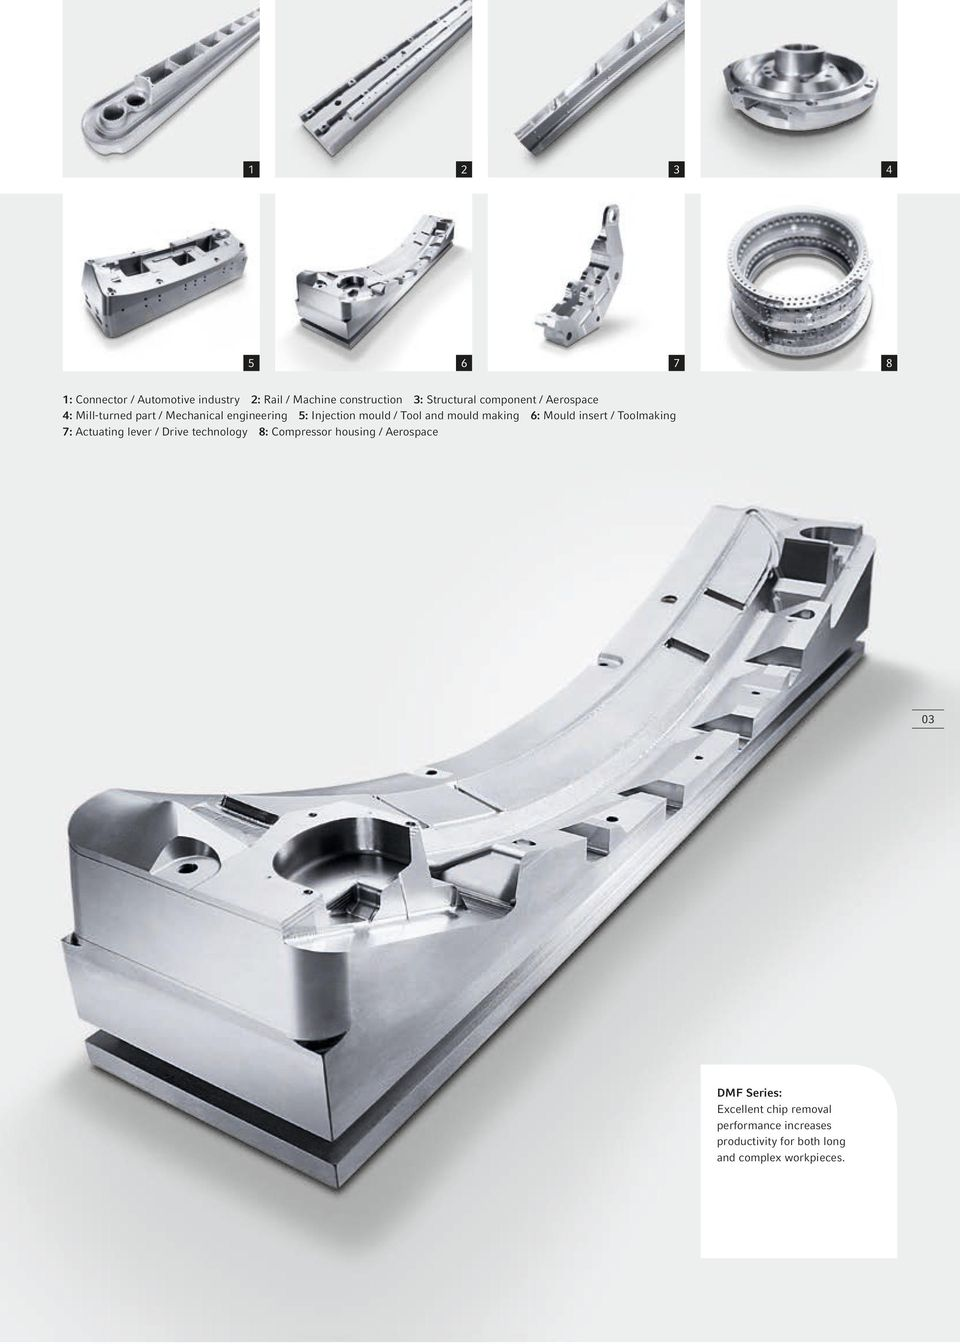 making 6: Mould insert / Toolmaking 7: Actuating lever / Drive technology 8: Compressor housing /